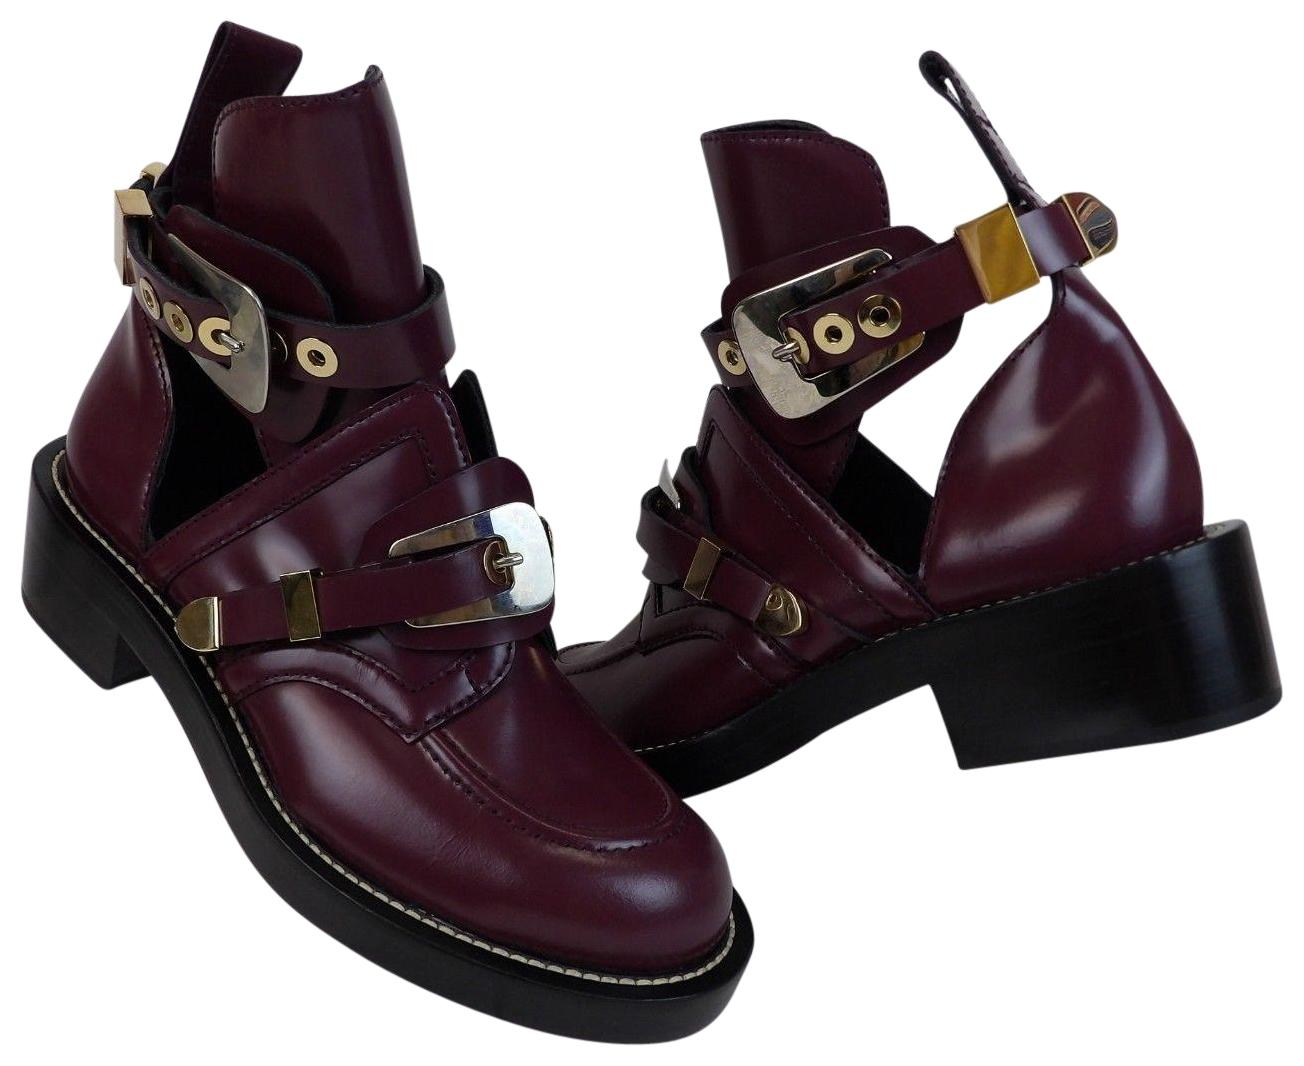 Balenciaga Burgundy Ceinture Metal Buckle Cut Out Leather Ankle Boots/Booties Size EU 39.5 (Approx. US 9.5) Regular (M, B)